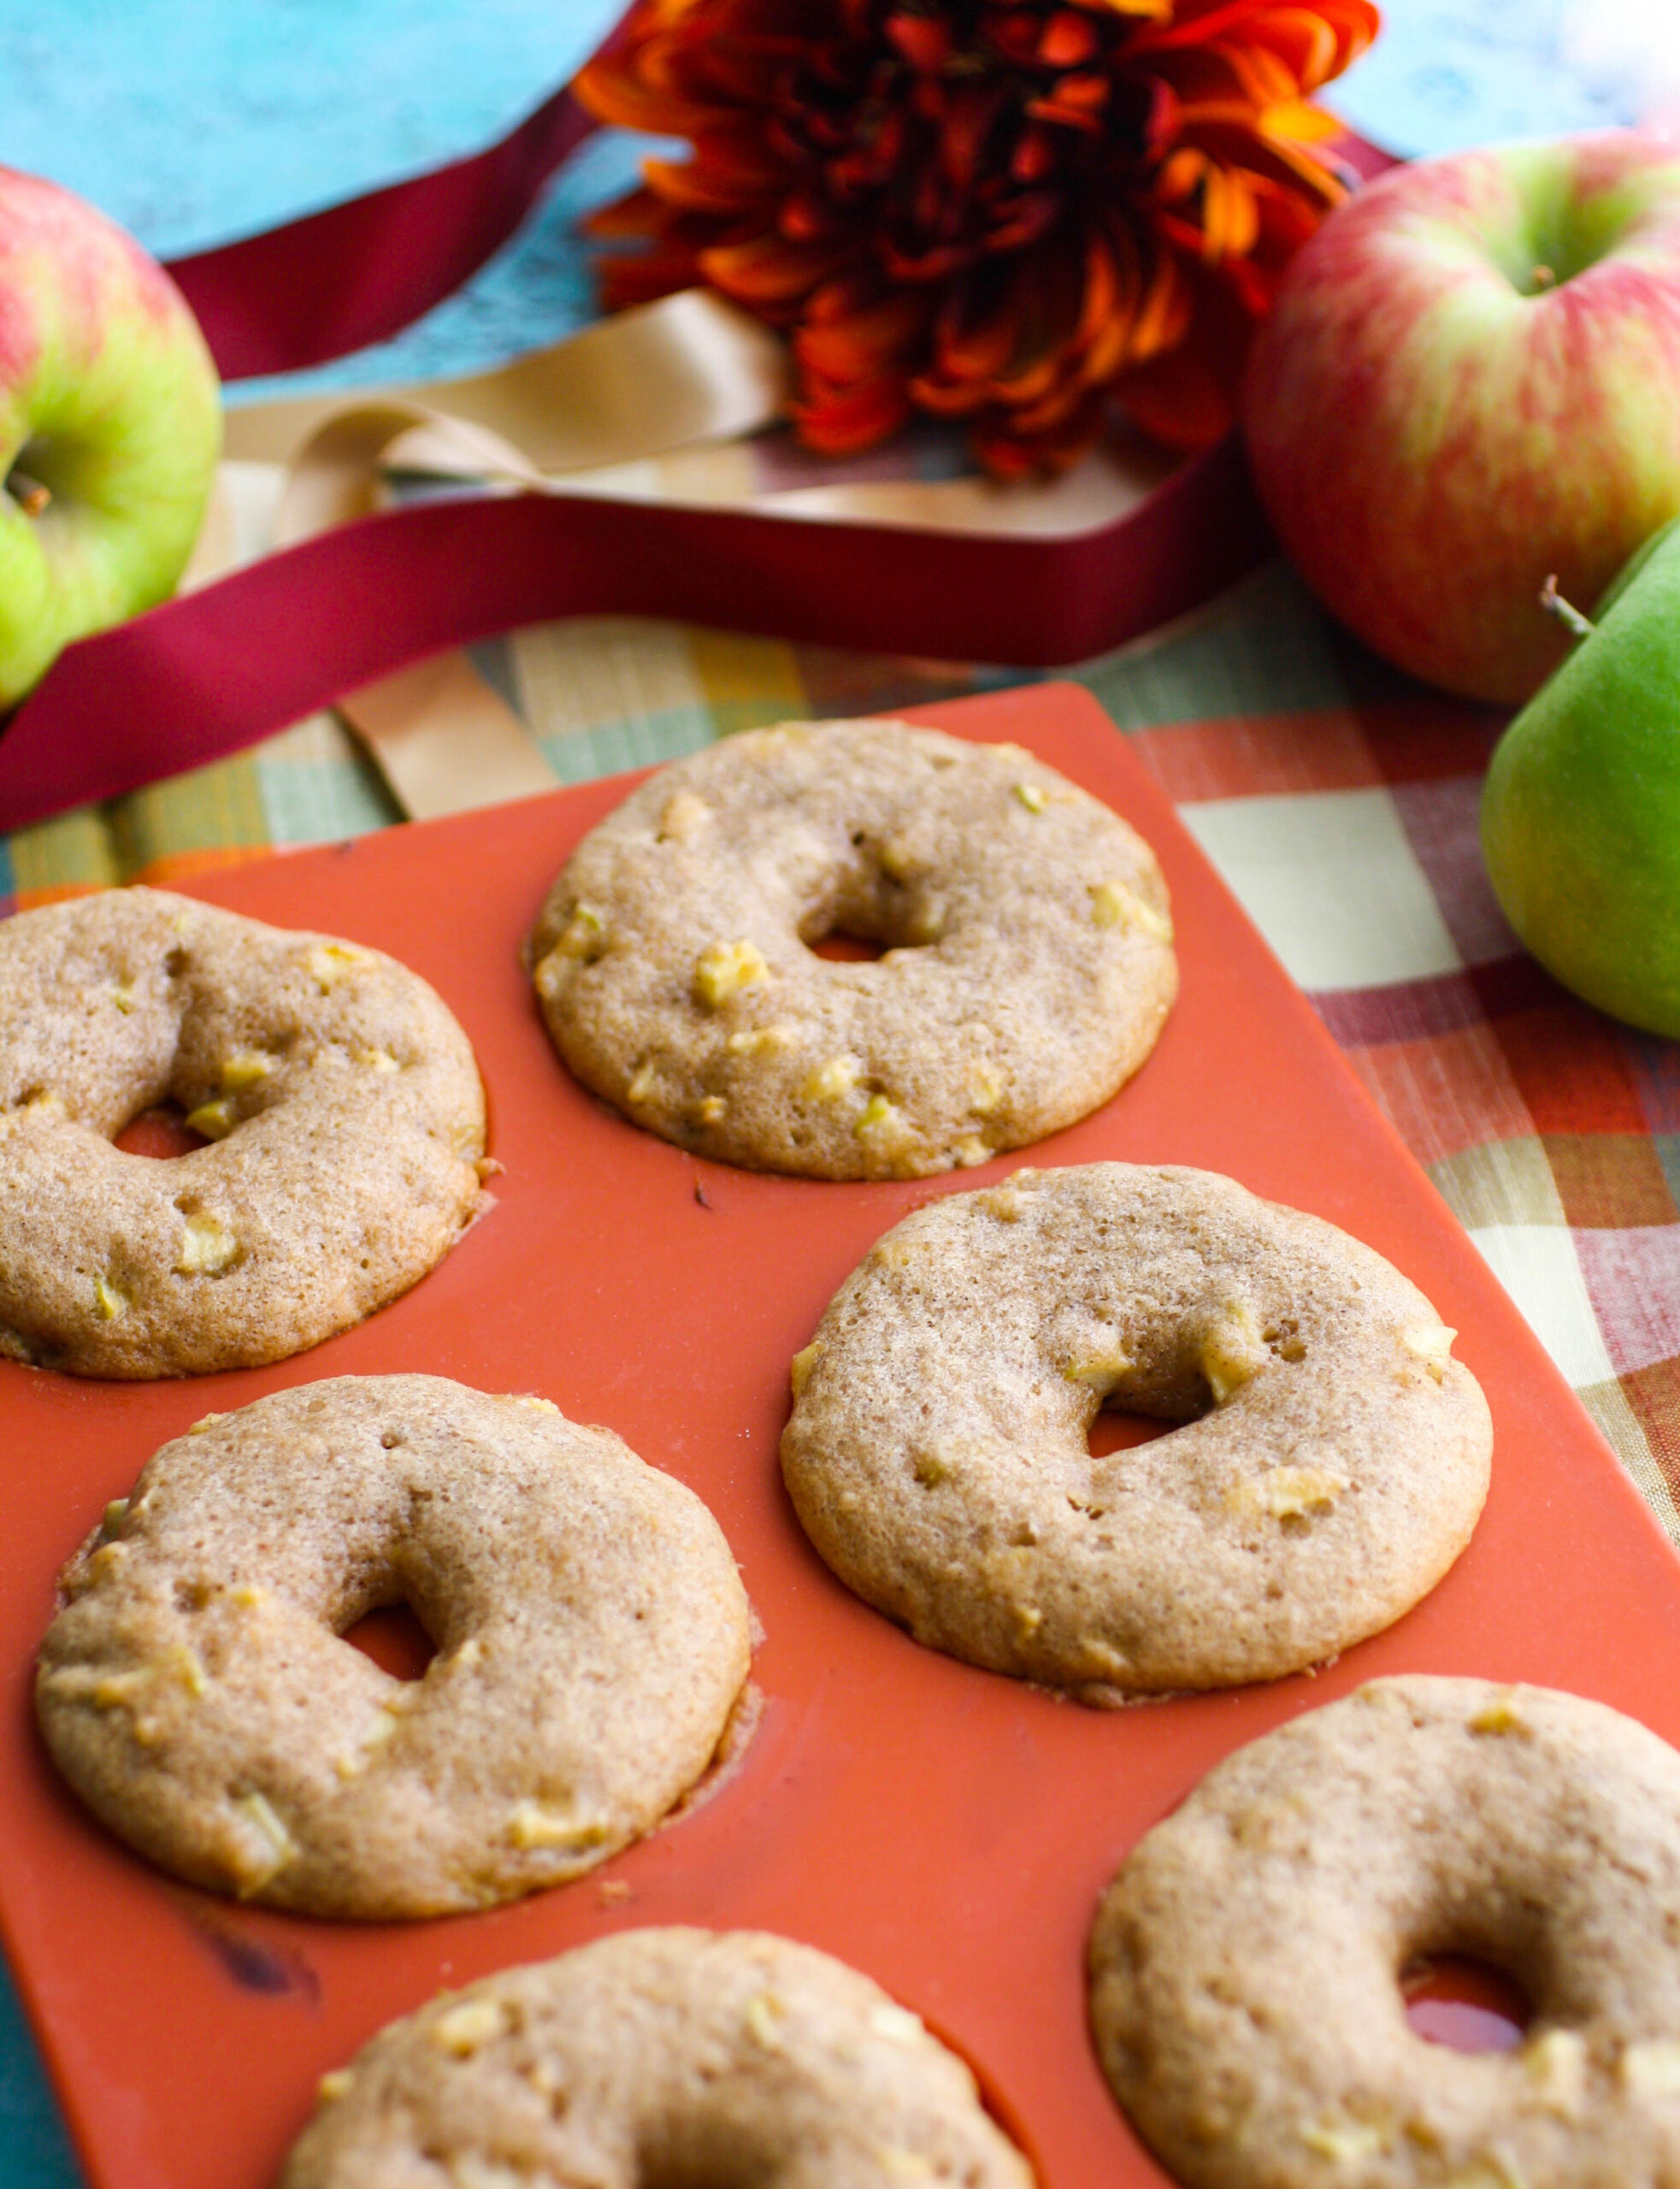 Bake up a batch of Baked Apple Cider Donuts this season!